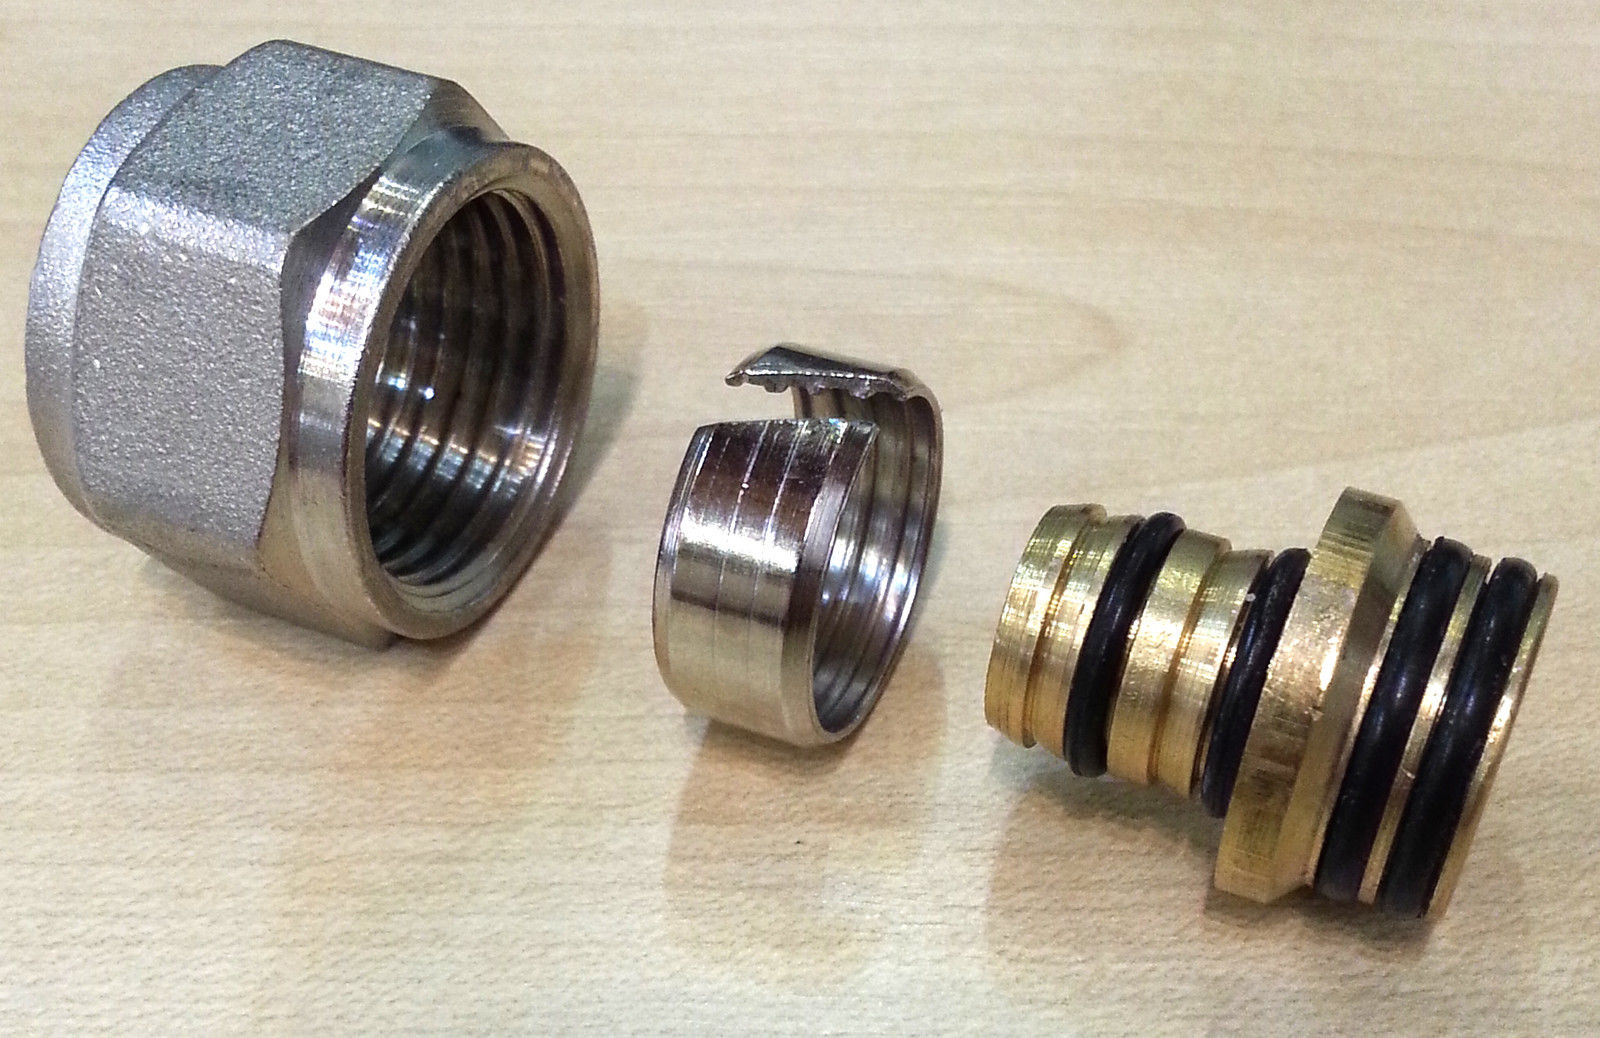 16mm-Eurocone-Pipe-Connectors-For-Dismy-Underfloor-Heating-Manifolds-161671757428